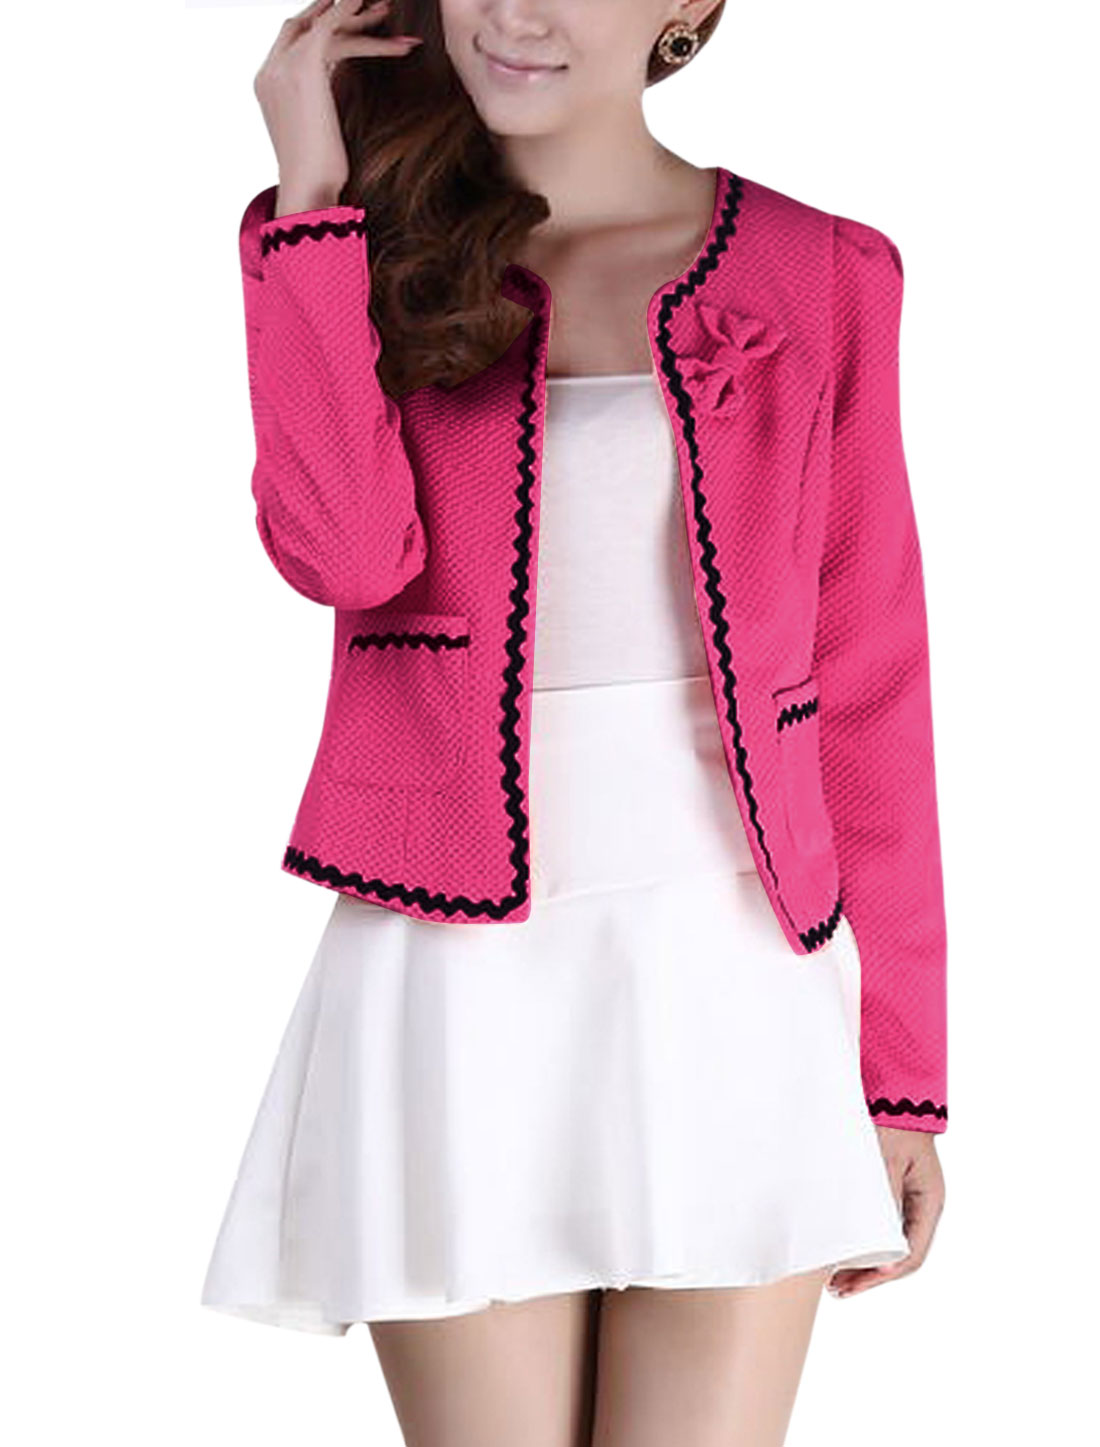 Lady Front Opening Bowknot Decor Cozy Fit Blazer Fuchsia XS